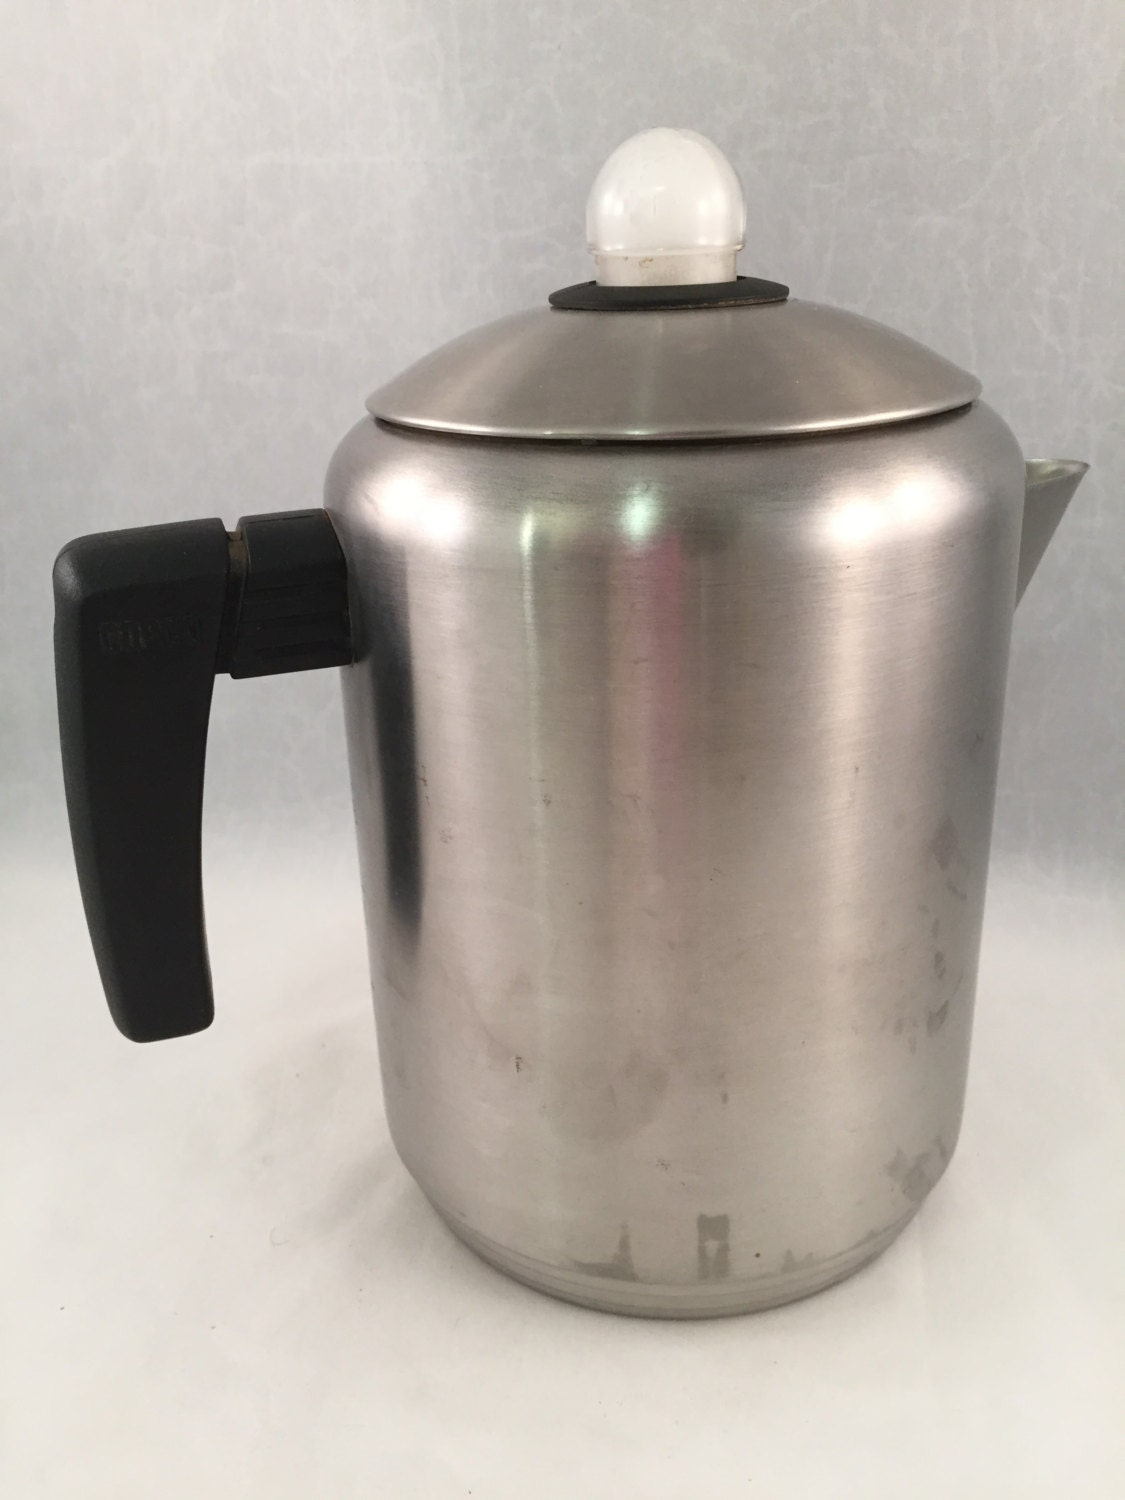 RESERVED 8 Cup Copco Stainless Steel Coffee Pot/Percolator